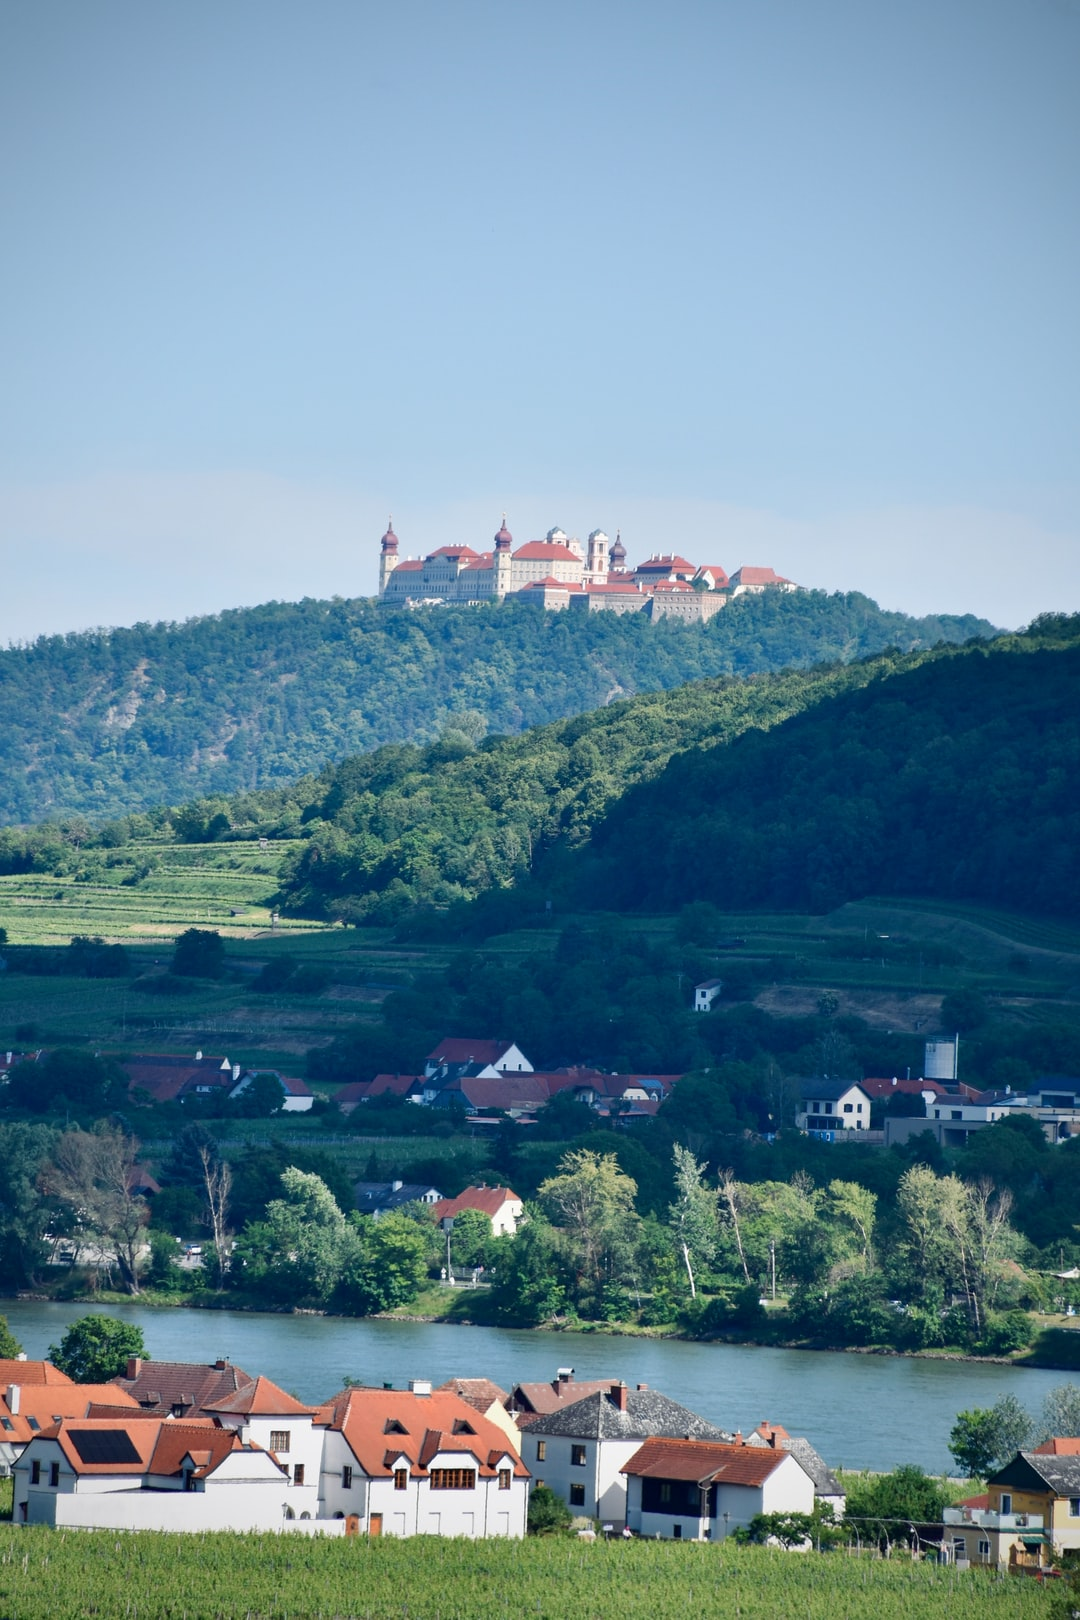 The monastery Stift Göttweig sitting over the Danube river. Good visualisation of the ancient power of monasteries as beholders, keepers and  producers of knowledge and wisdom.